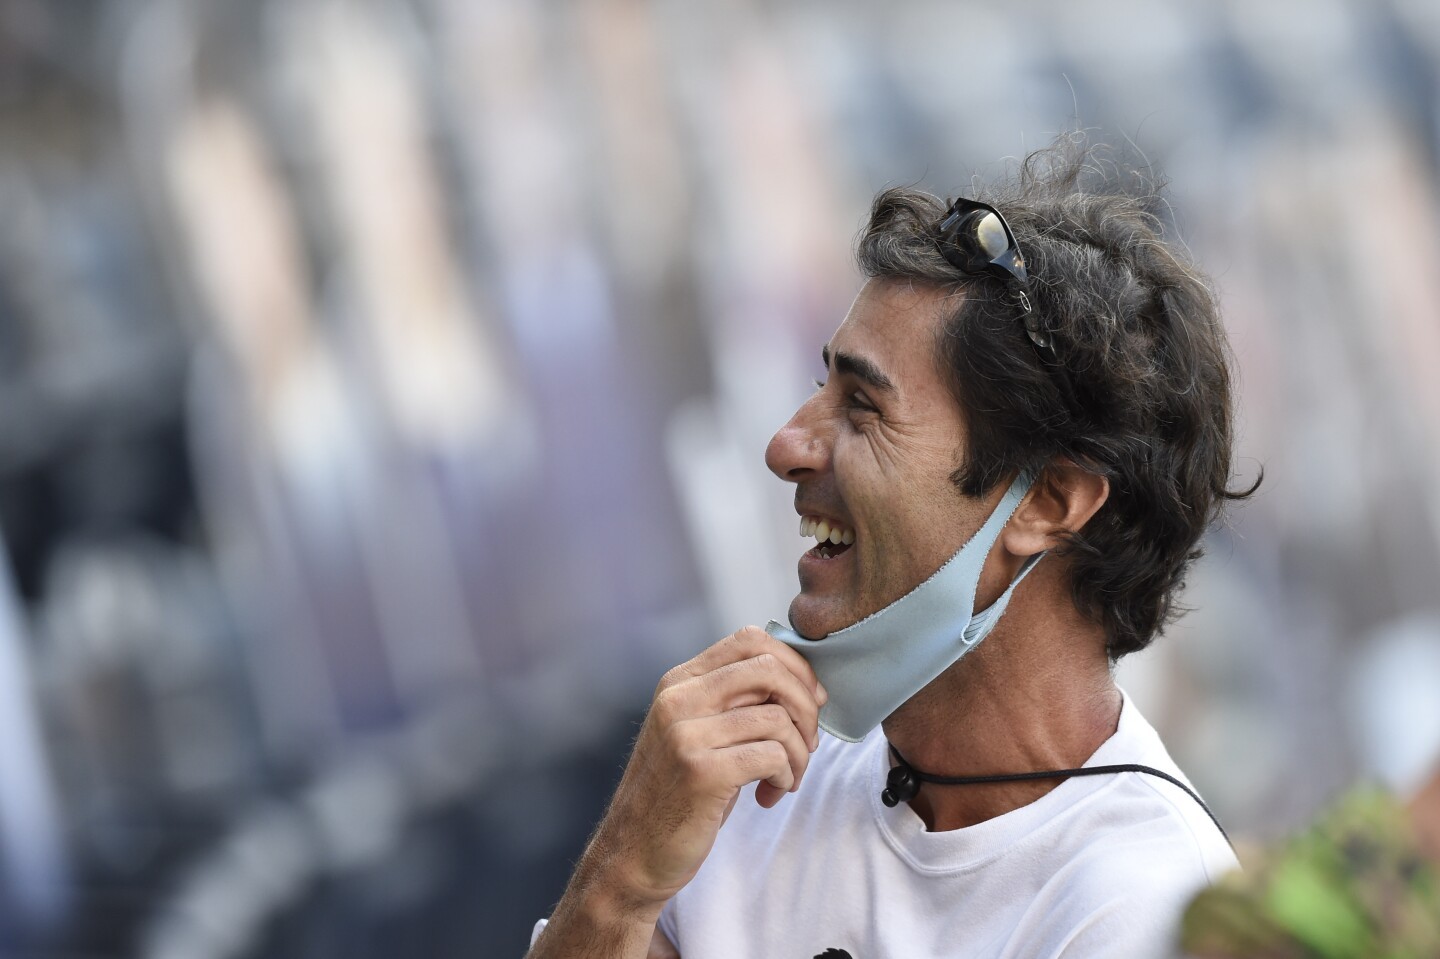 San Diego Padres general manager AJ. Preller laughs after the Padres beat the Seattle Mariners 7-4 in a baseball game Sunday, Sept. 20, 2020, in San Diego. The Padres clinched a spot in the playoffs. (AP Photo/Denis Poroy)